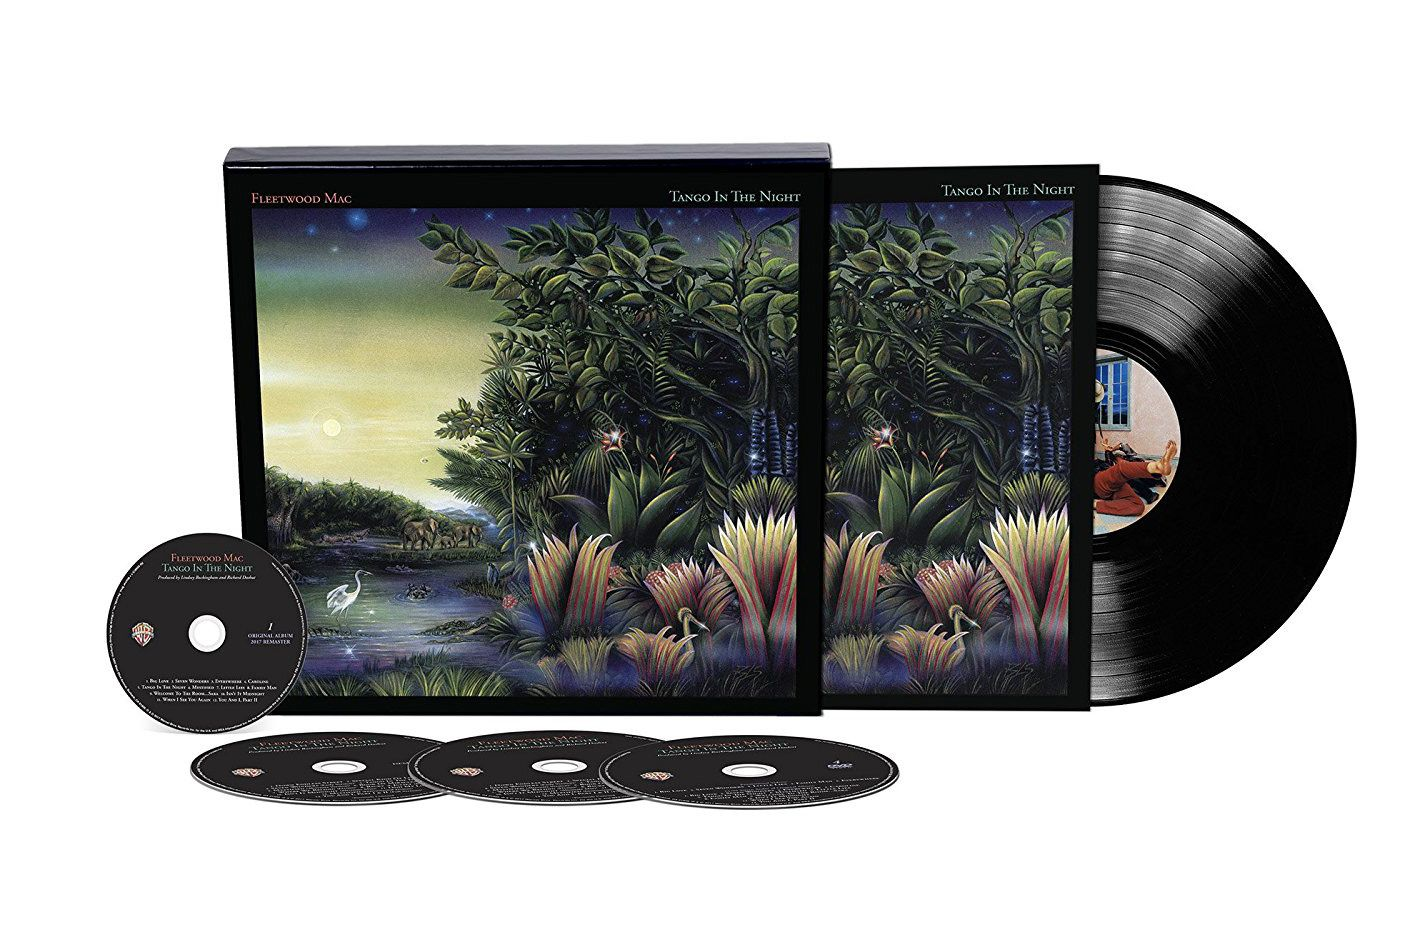 Fleetwood Mac, 'Tango in the Night: Deluxe Edition'